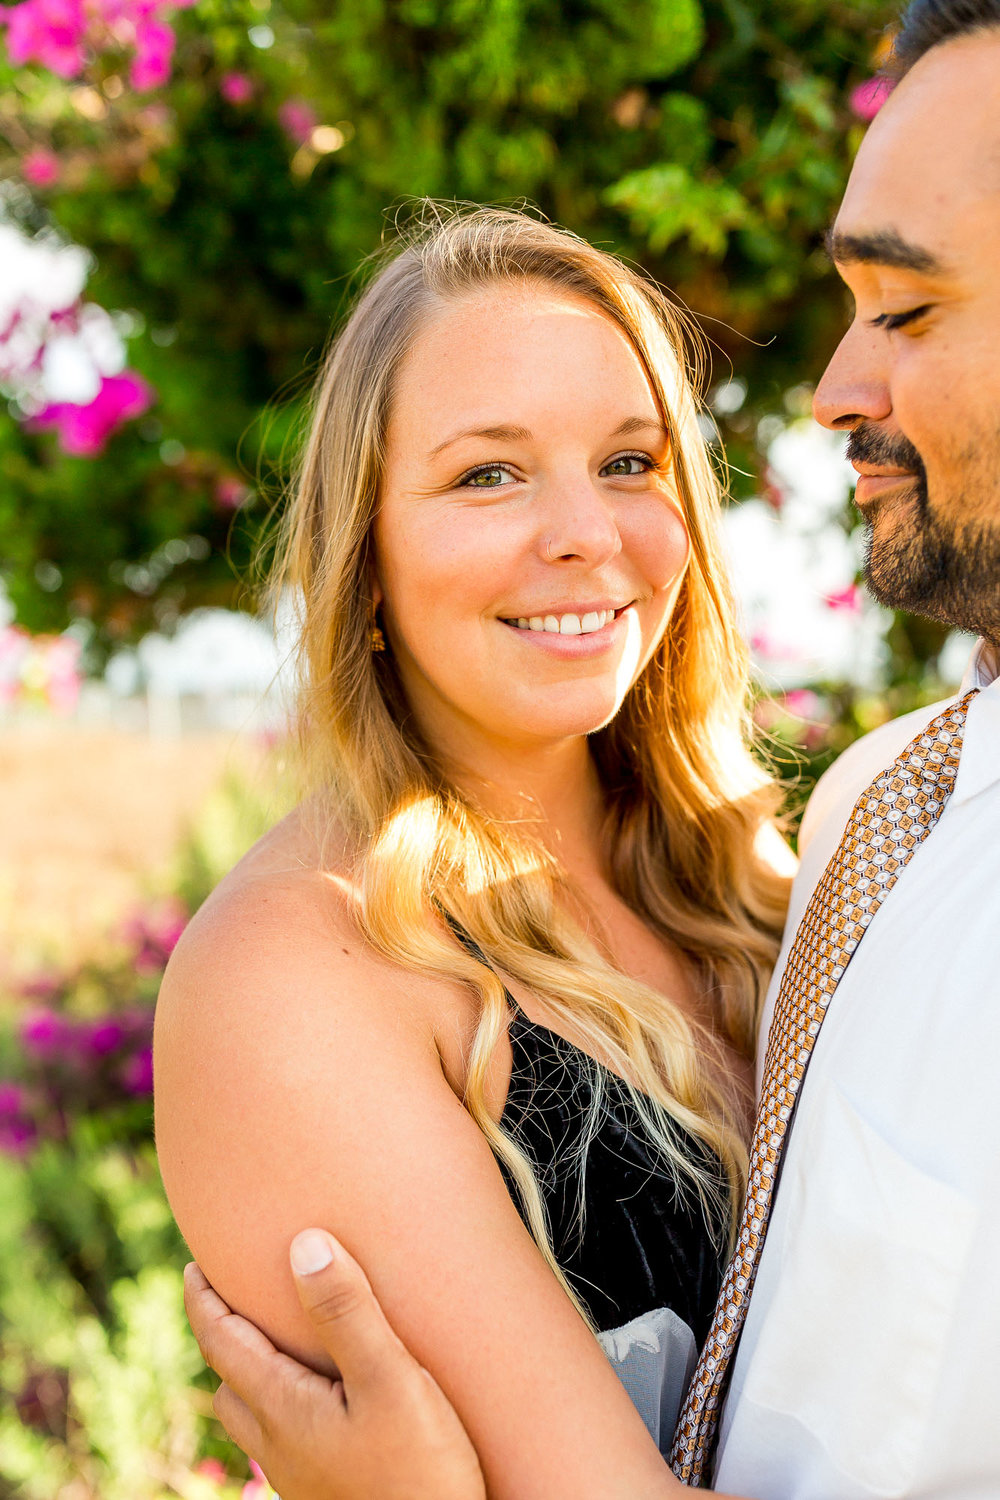 Justine_Puneet_Cardiff_Engagement_Session_076.jpg